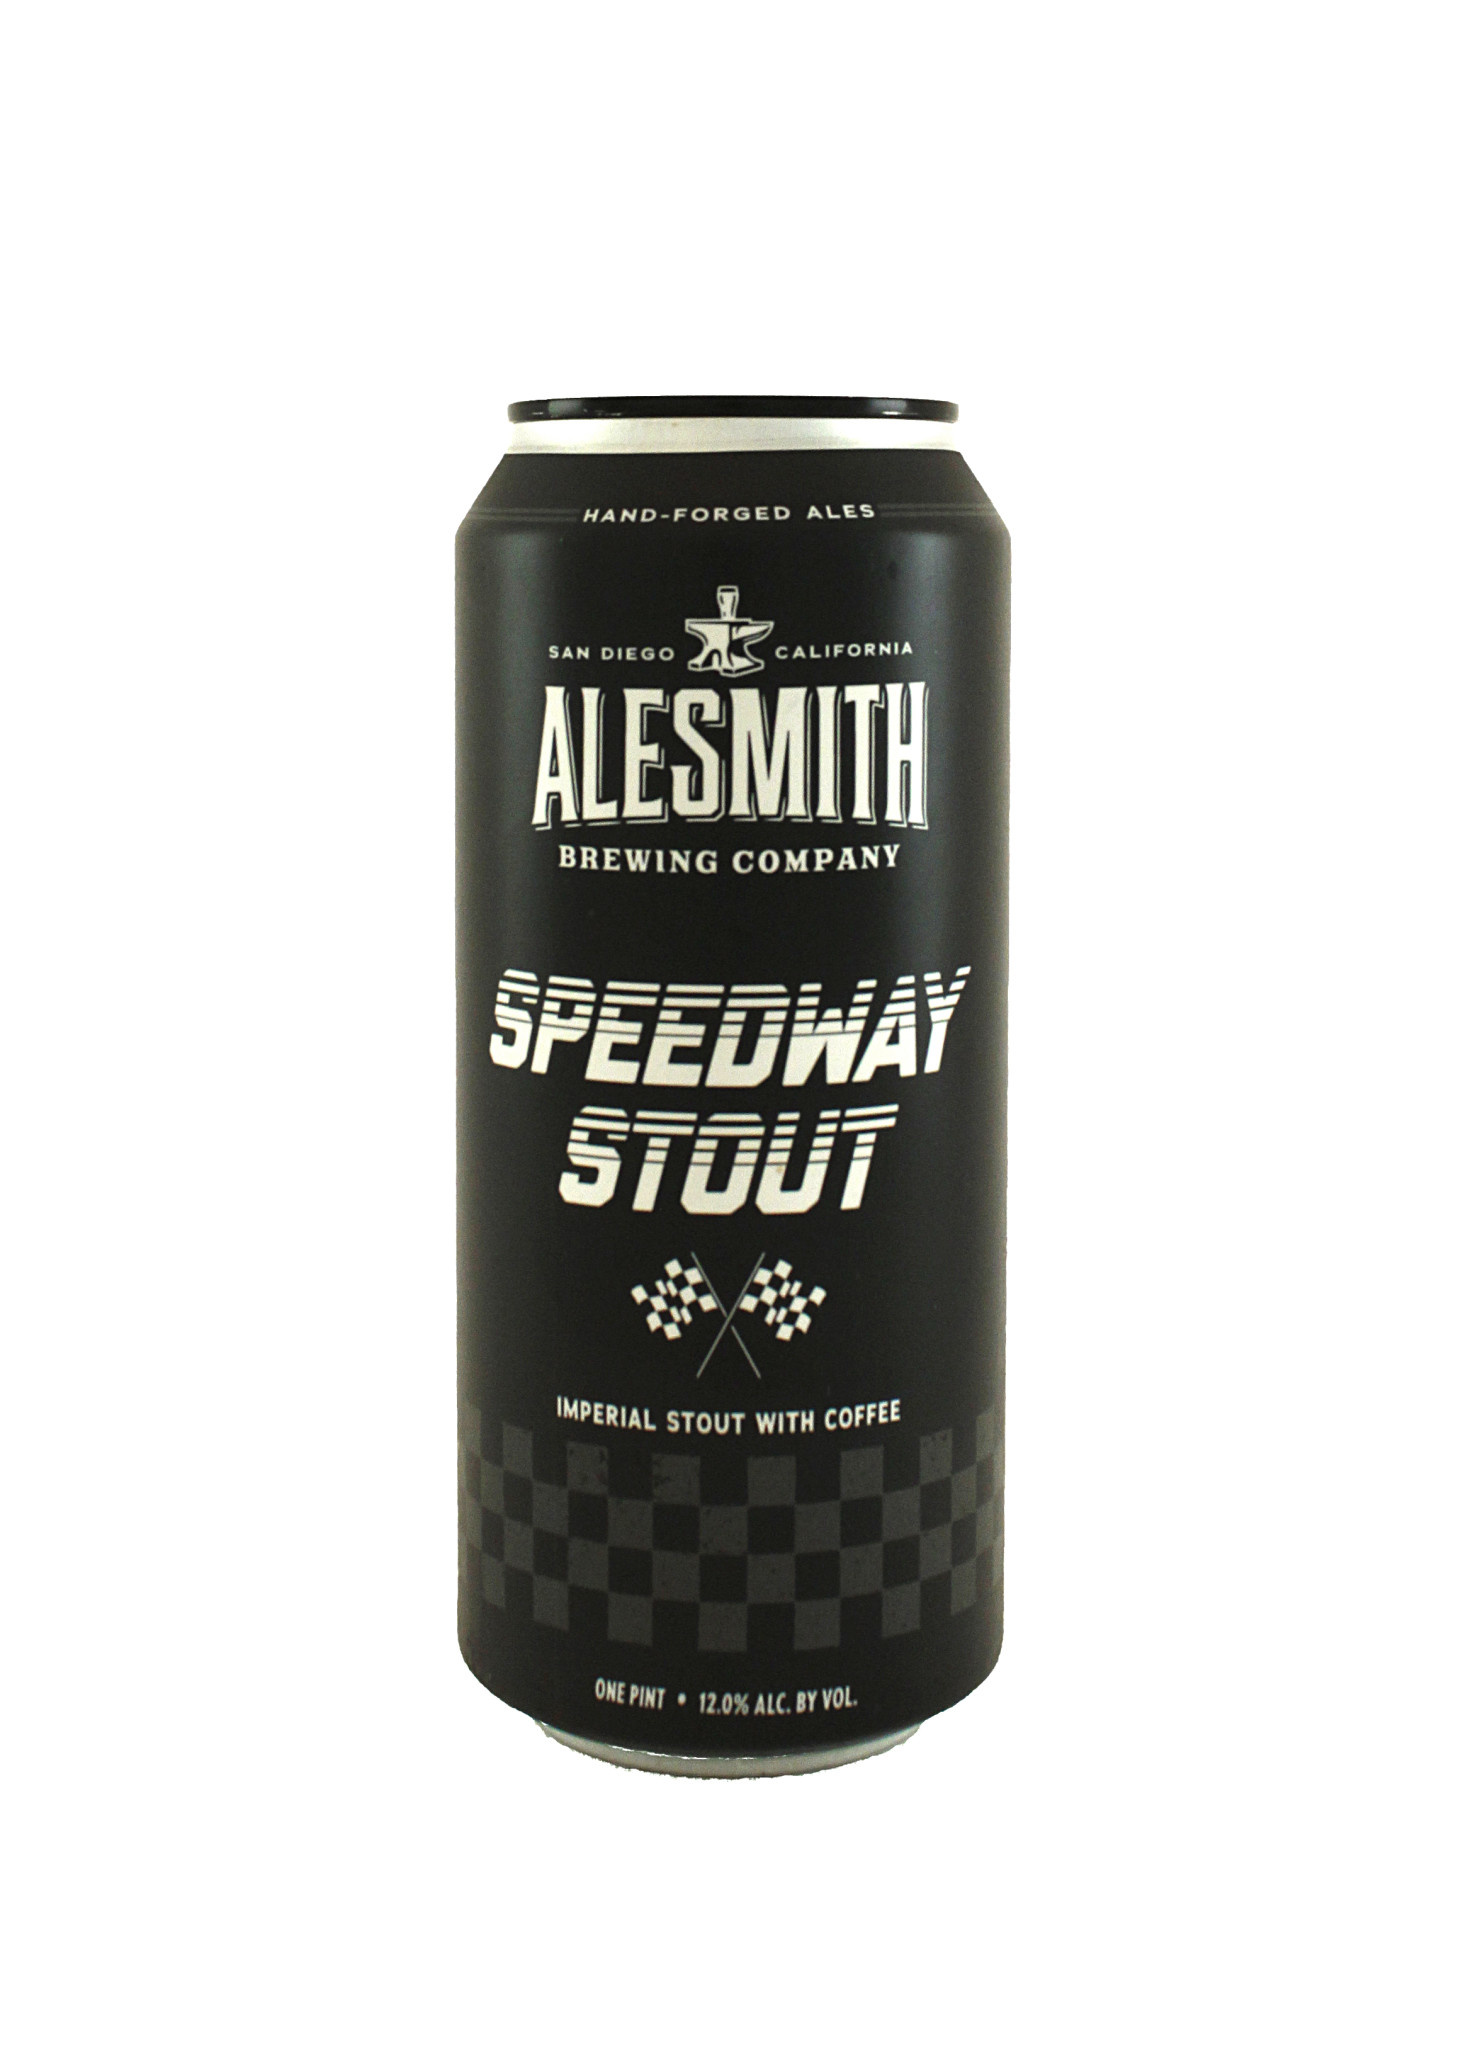 "AleSmith ""Speedway Stout"", California - 16oz can"